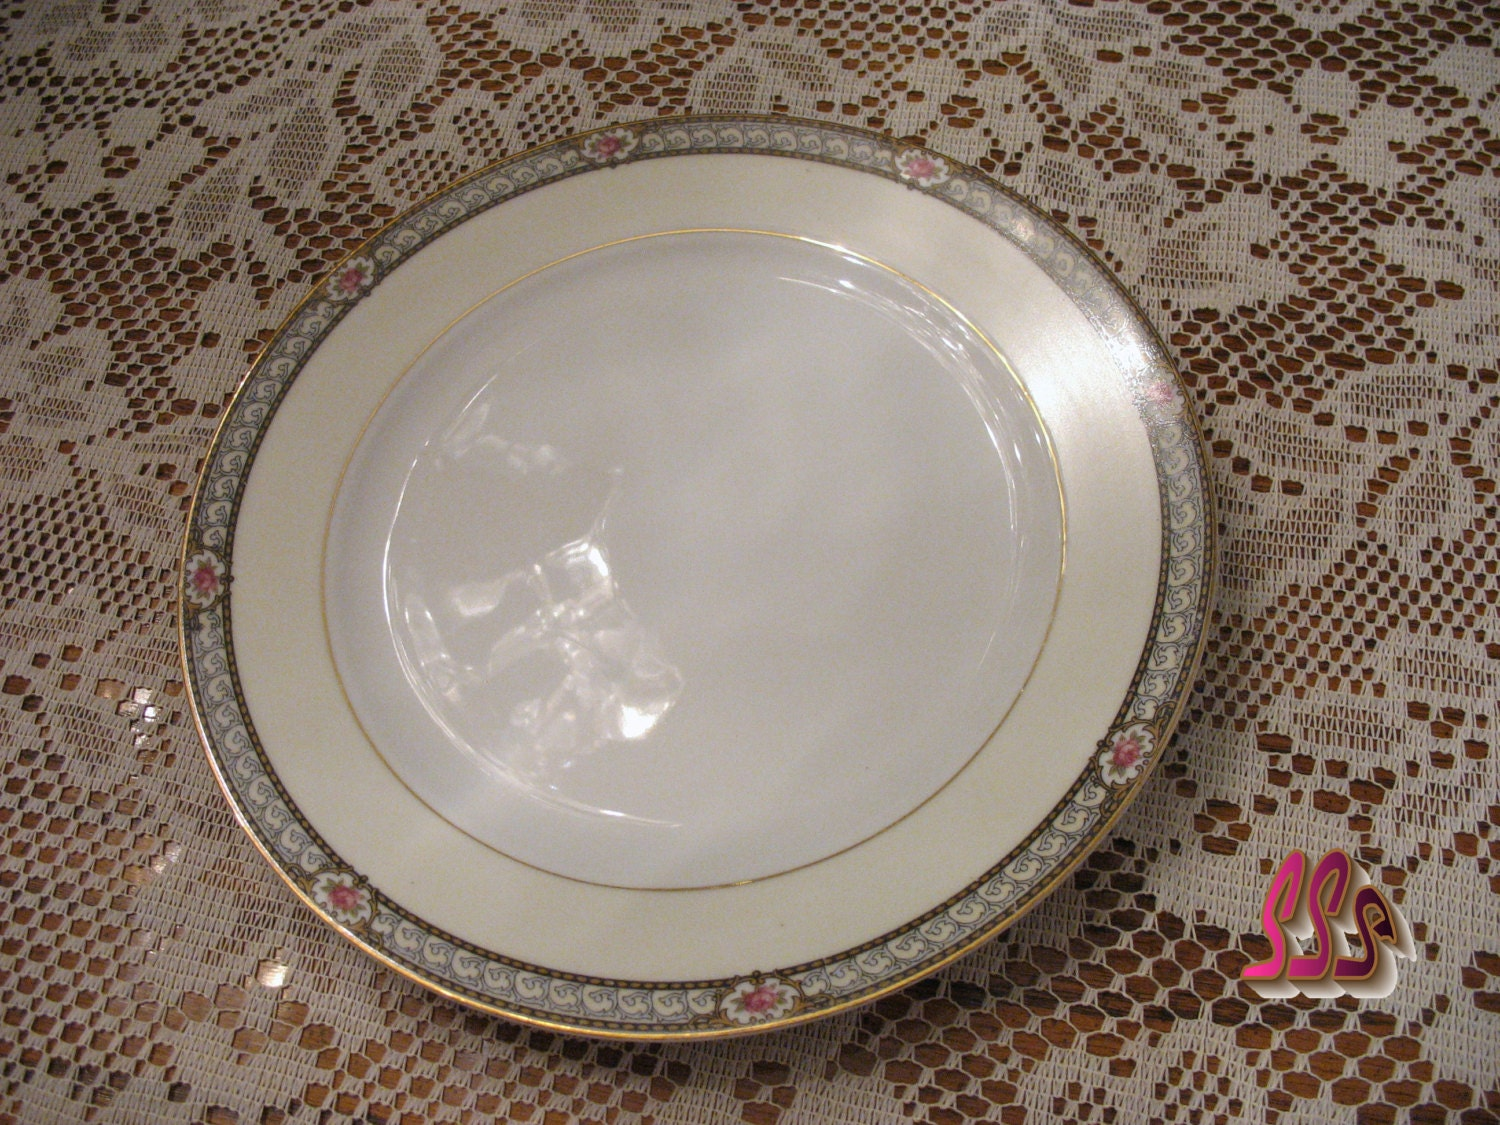 dating nippon china About antiques collecting antique  soft paste porcelain  (ltd) - after 1861 east germany 1949 - 1990 nippon (found on japanese wares) 1891-1921 .